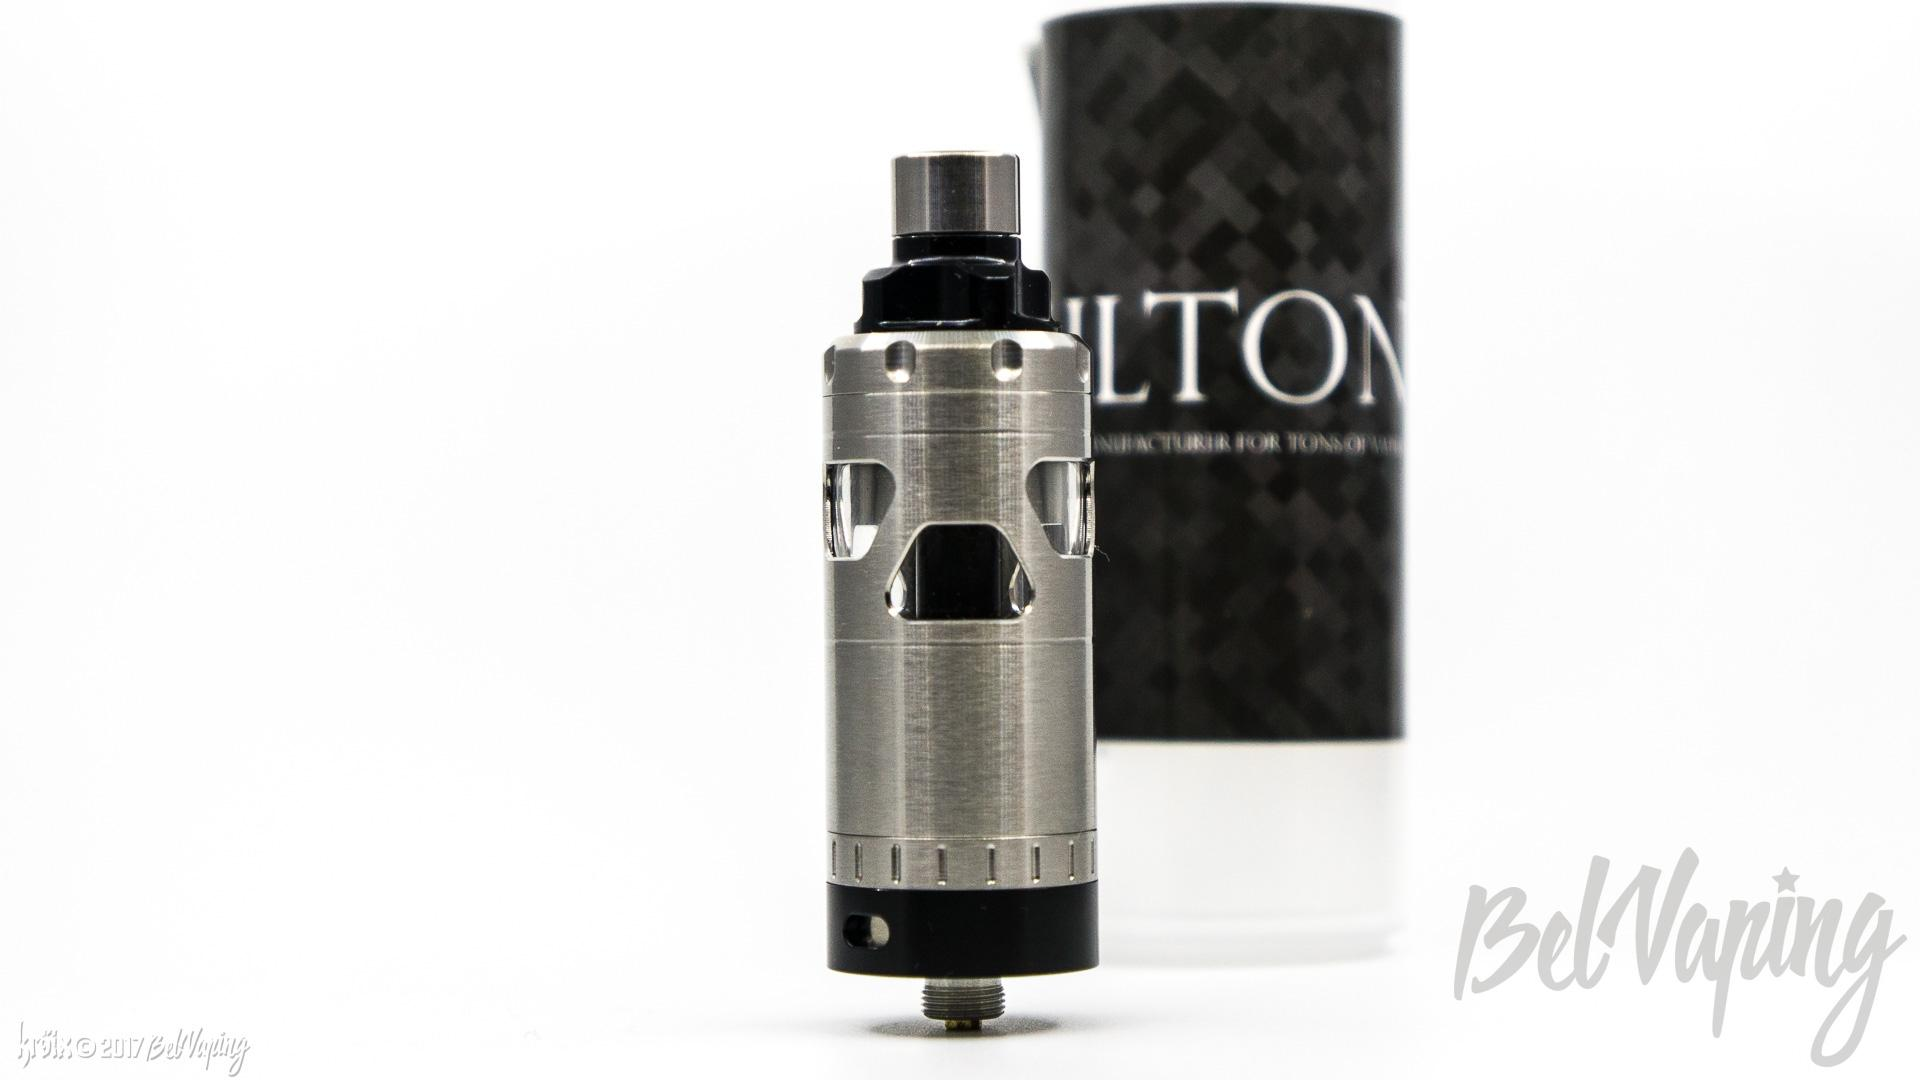 Обзор клона SQuape E[motion] RTA - Ulton Emotion 316SS